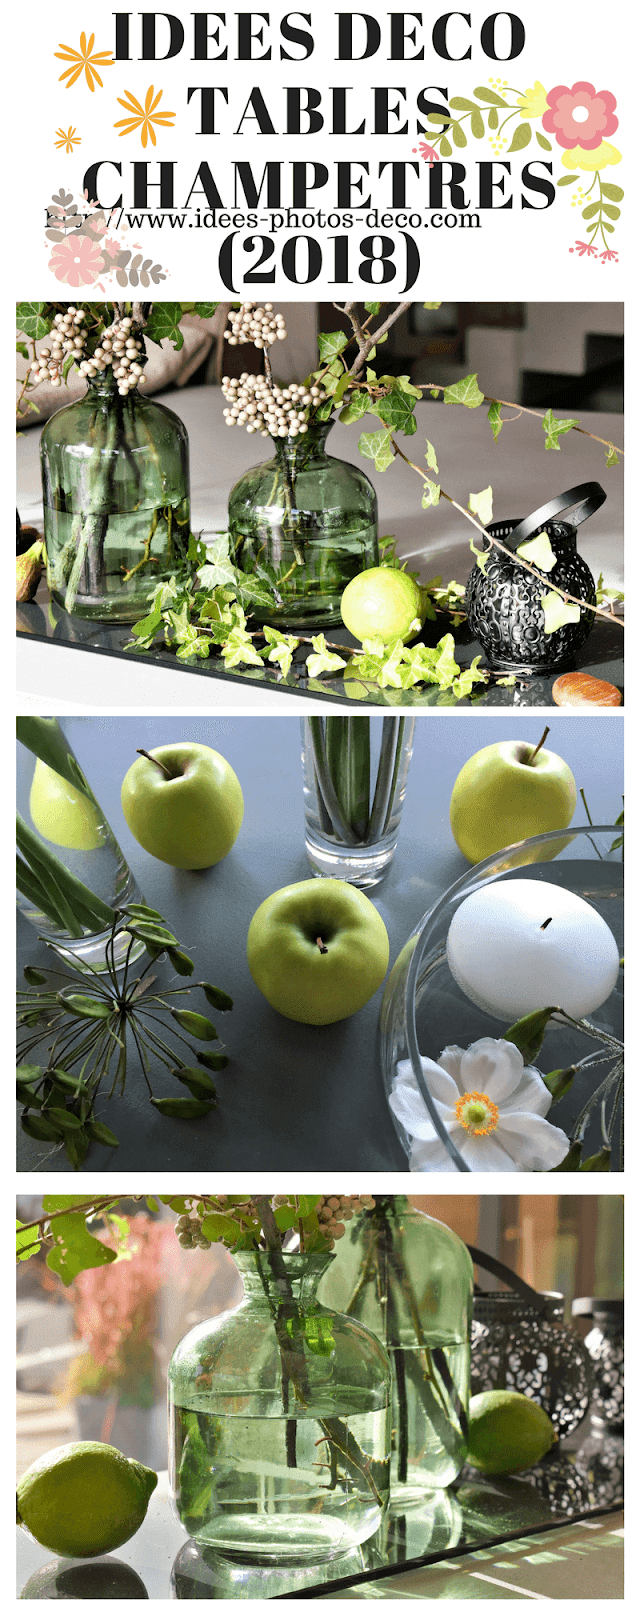 idee deco table champetre pas cher